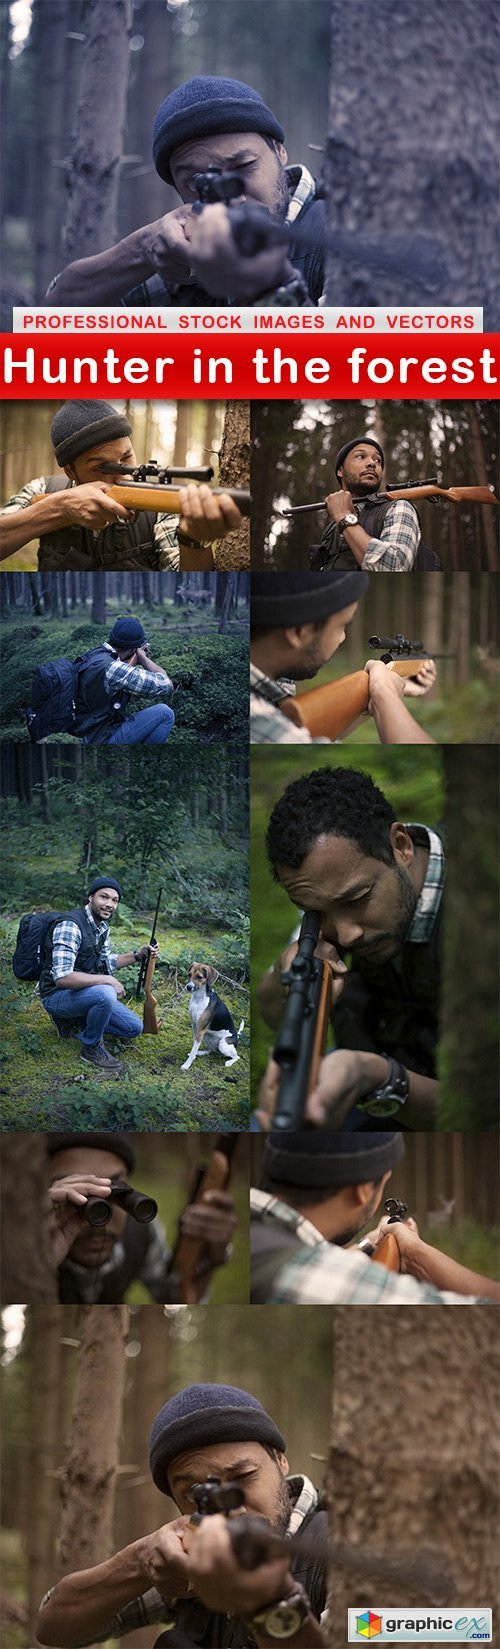 Hunter in the forest - 10 UHQ JPEG